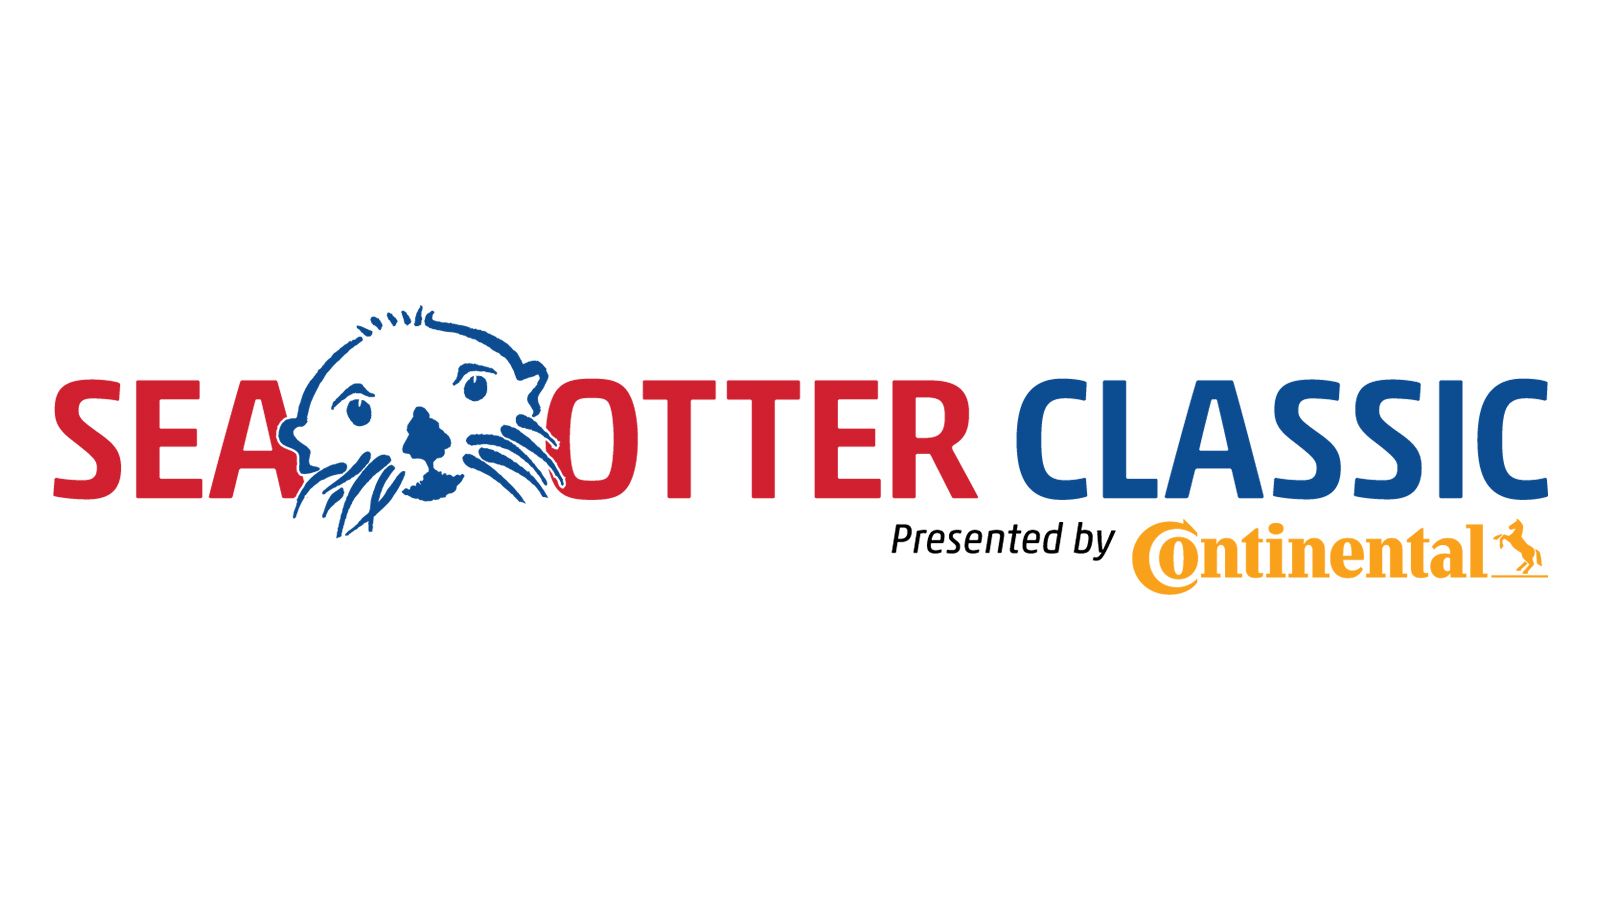 The 2020 Sea Otter Classic will take place October 1-4.